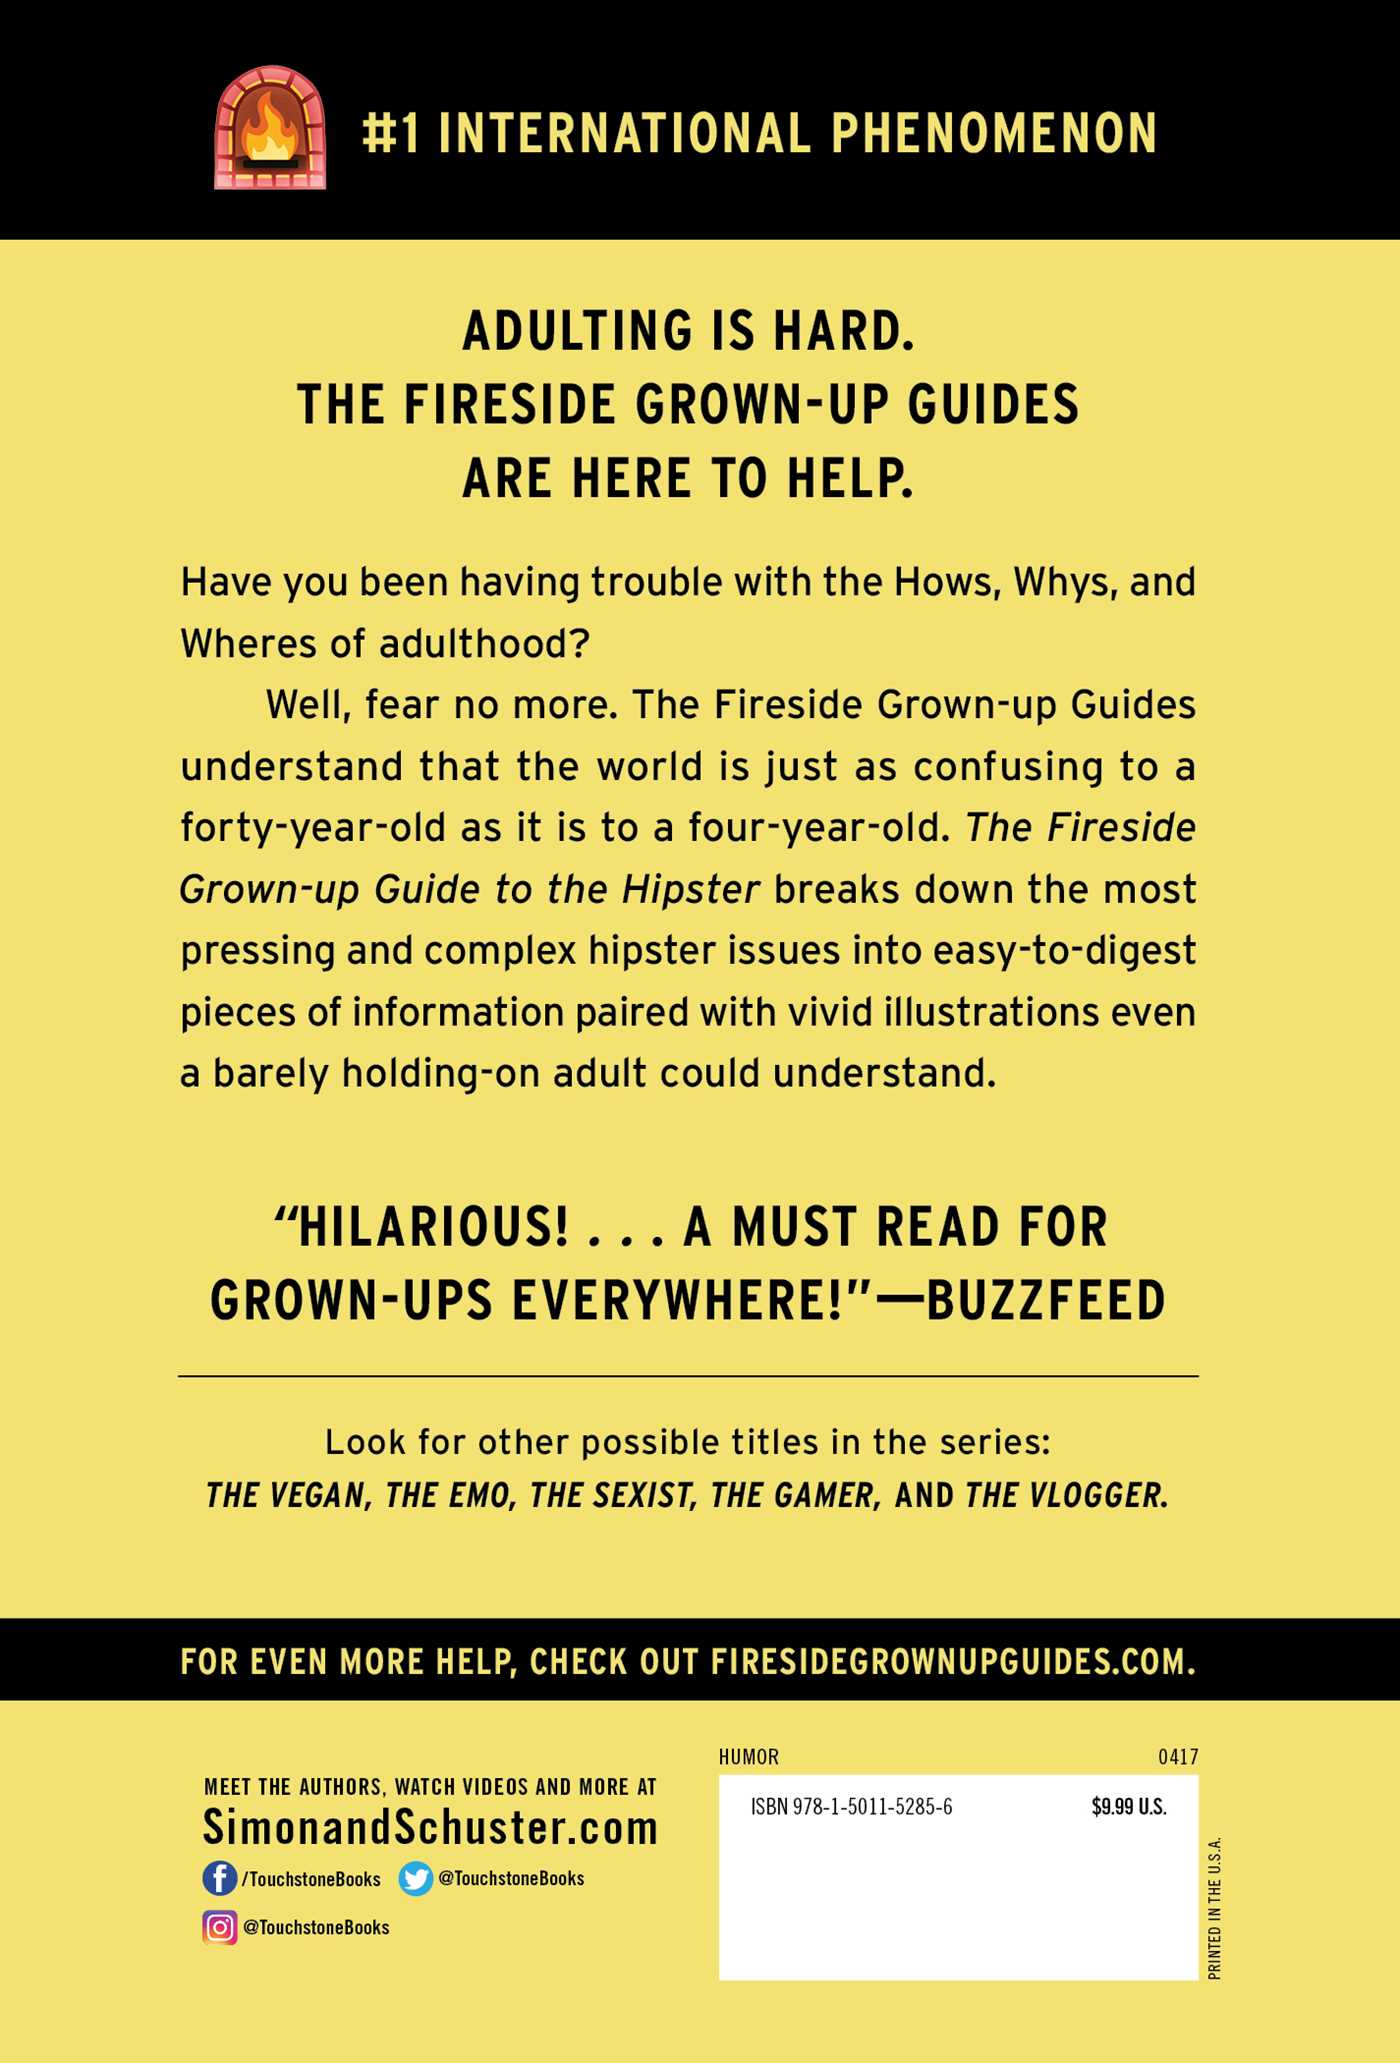 The fireside grown up guide to the hipster 9781501152856 hr back